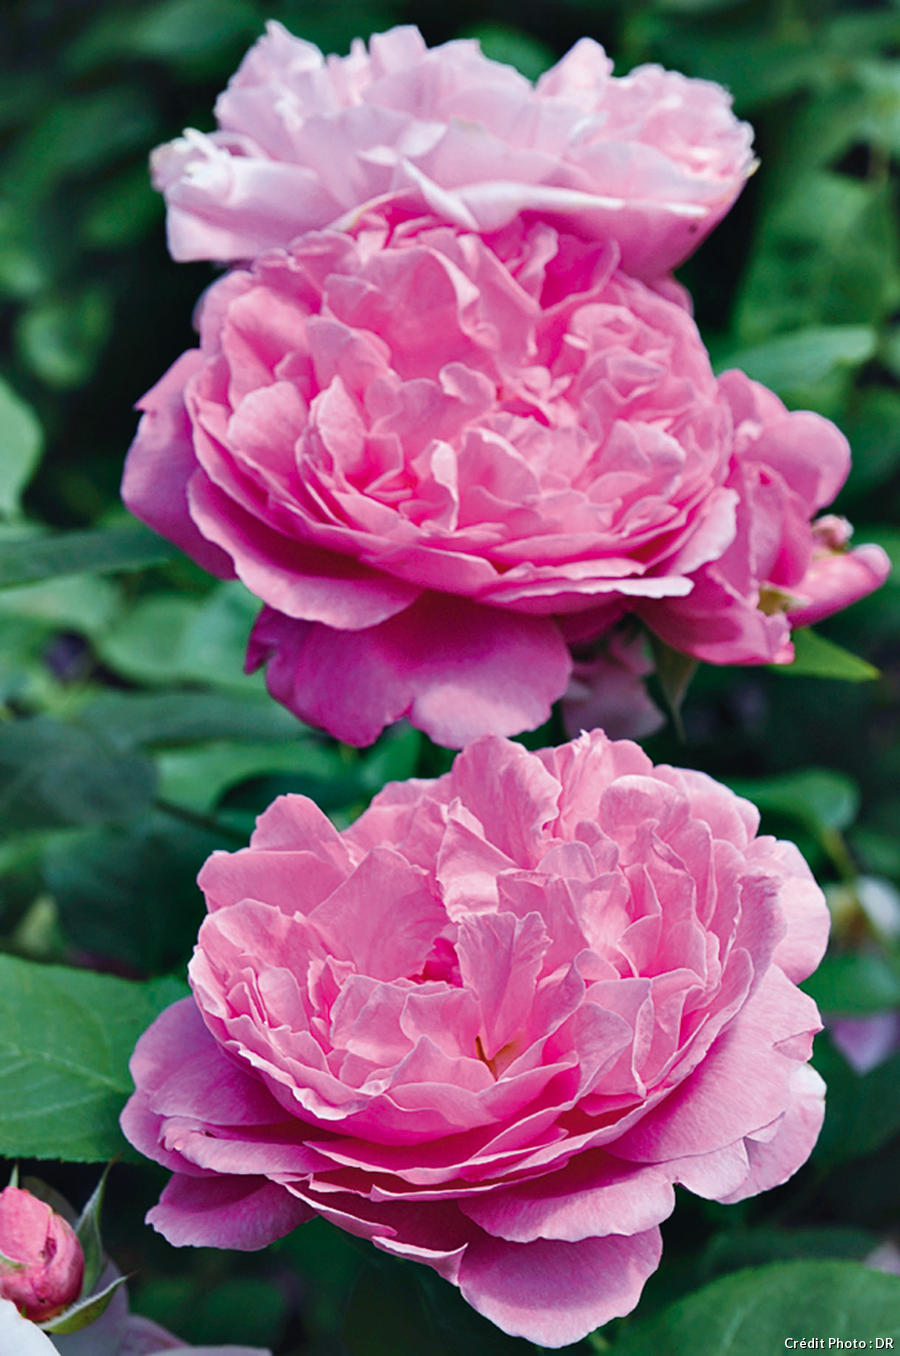 Le rosier 'The May Flower'